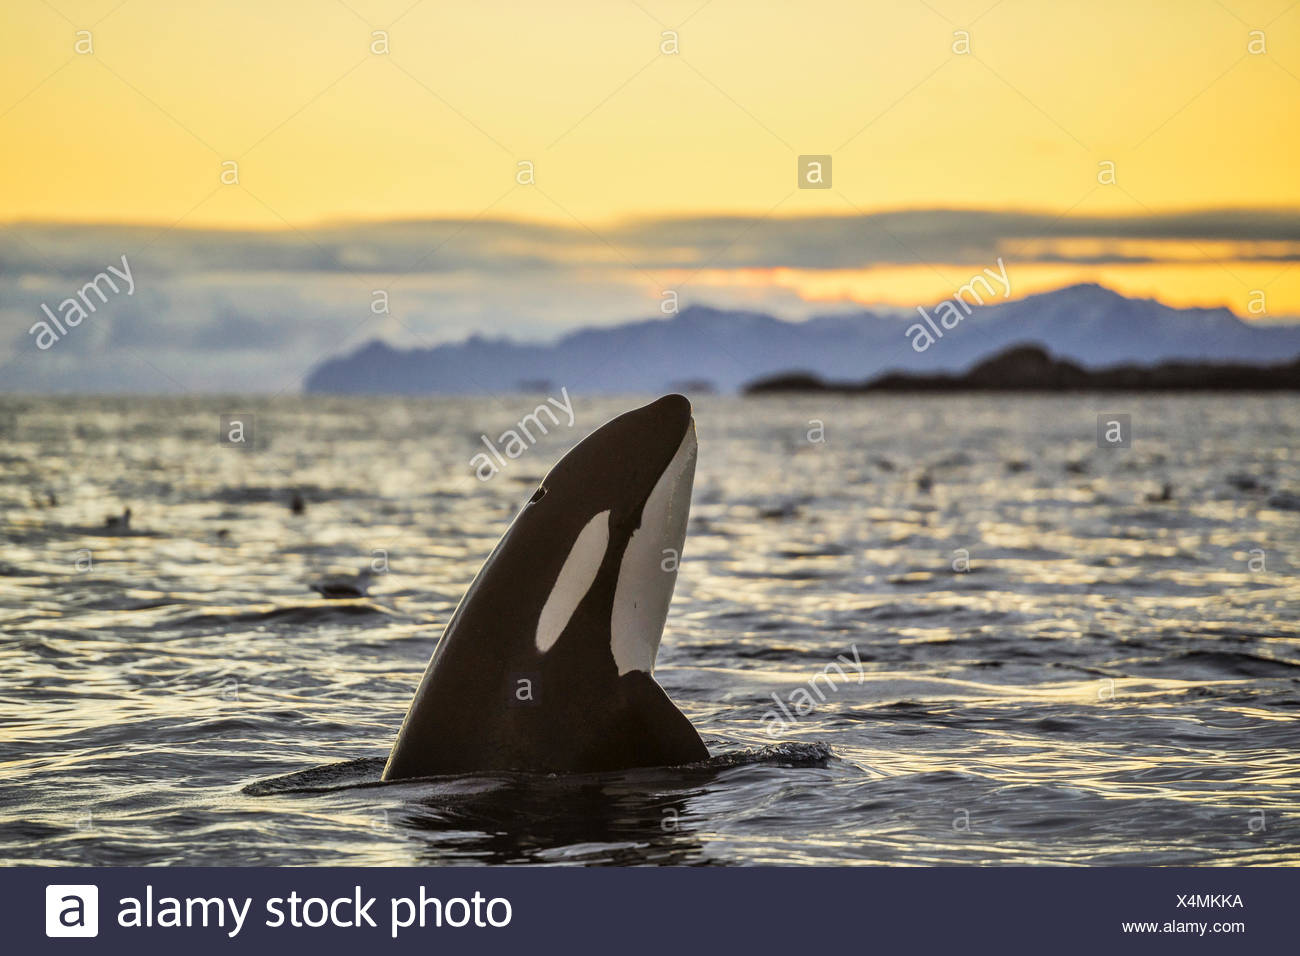 Orca (Orcinus orca) looking out of the water, Spyhopping, sunset, mountains at back, Kaldfjorden, Tromvik, Norway - Stock Image